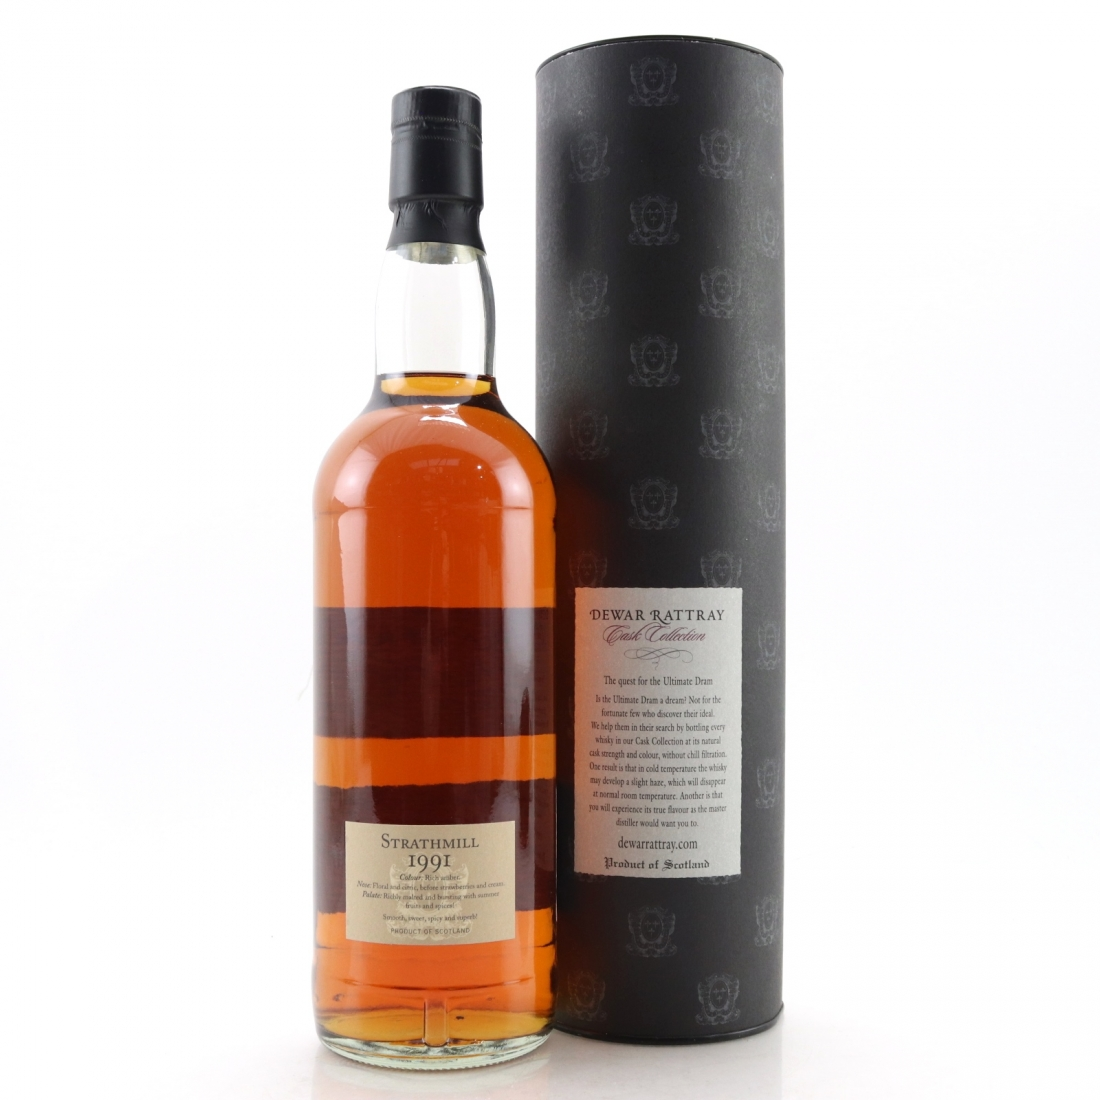 Strathmill 1991 A.D. Rattray 17 Year Old